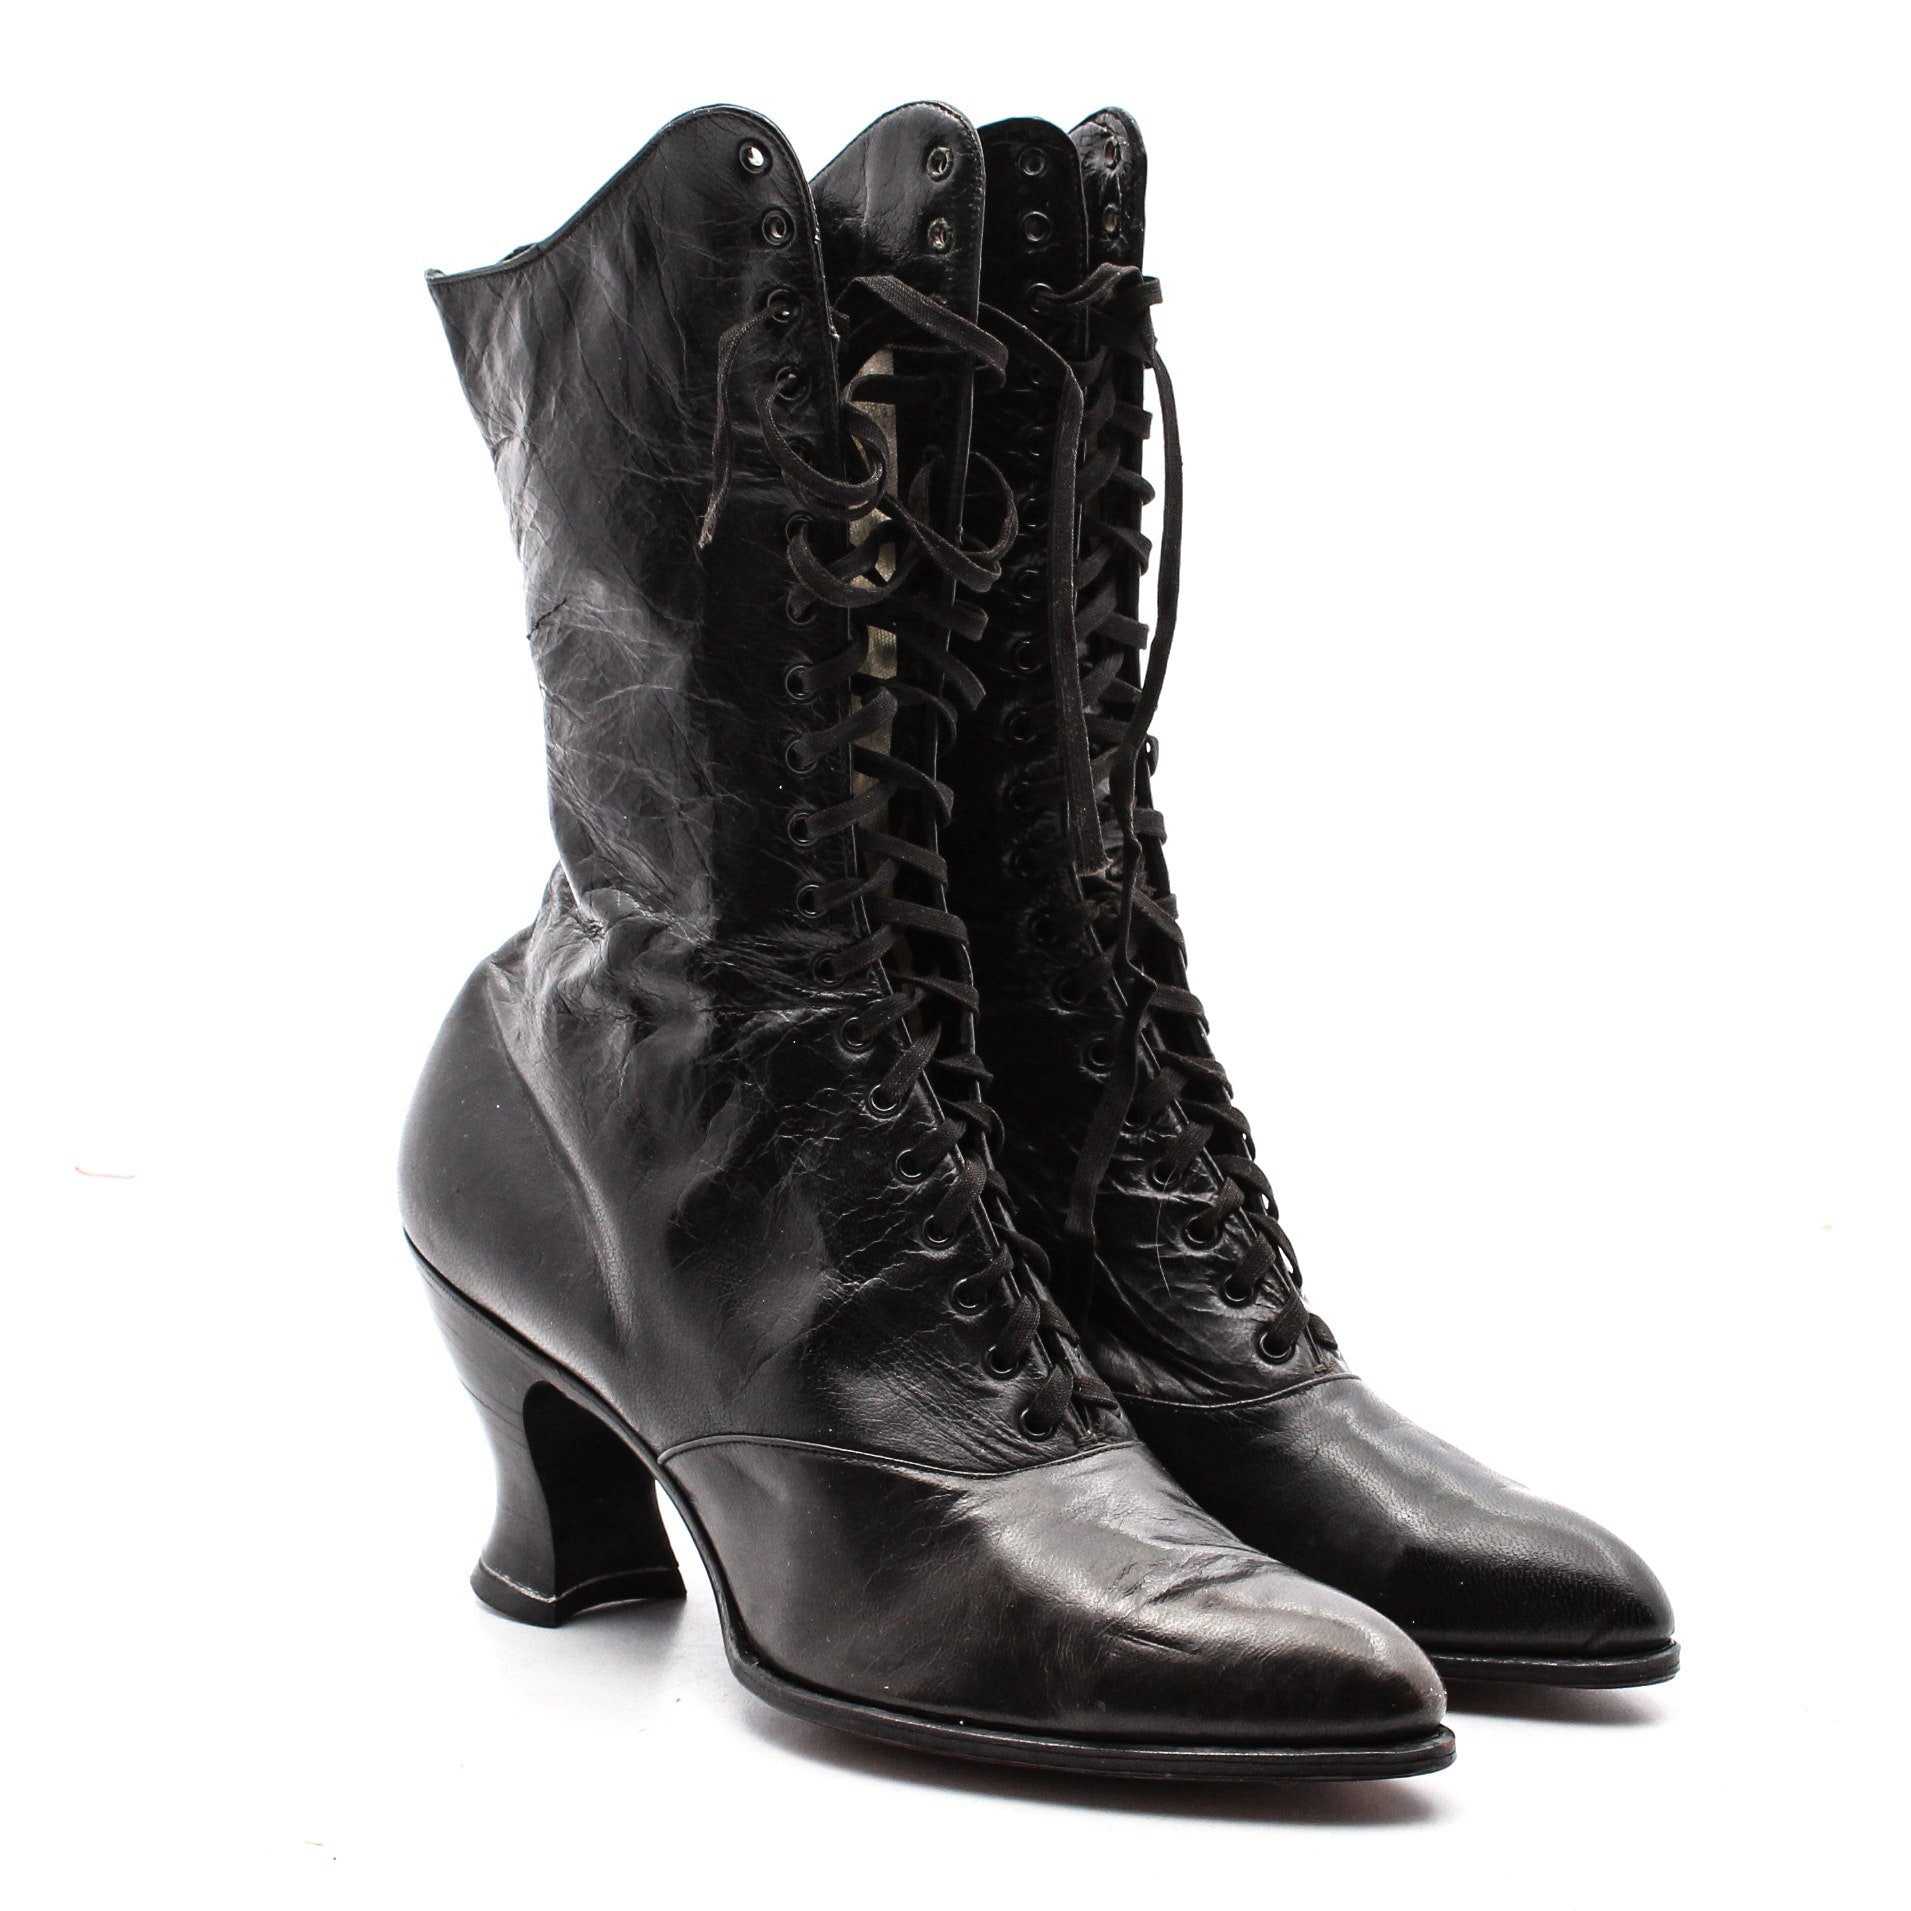 Vintage Dorothy Dodd Victorian Style Black Leather Lace-up Heeled Boots